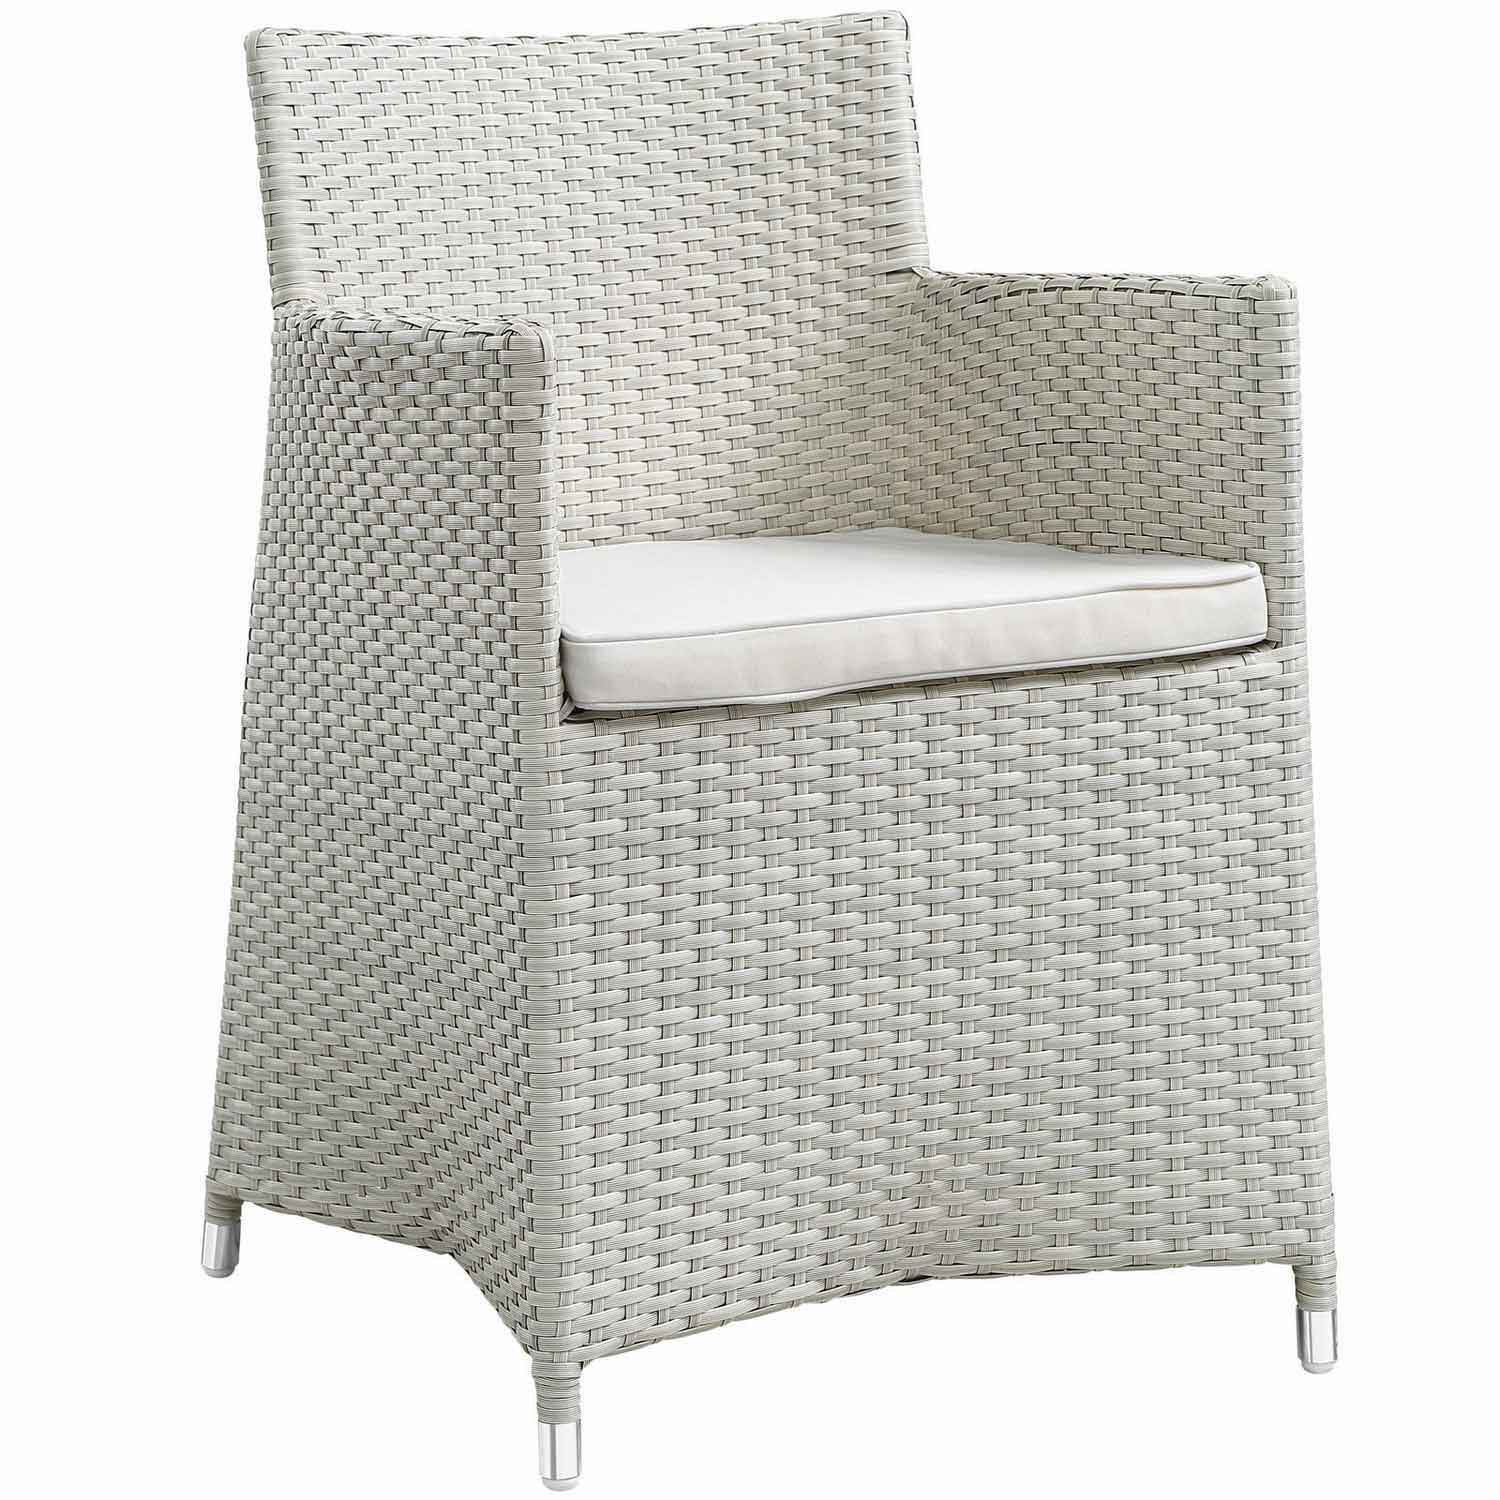 Modway Junction 3 Piece Outdoor Patio Dining Set - Gray/White